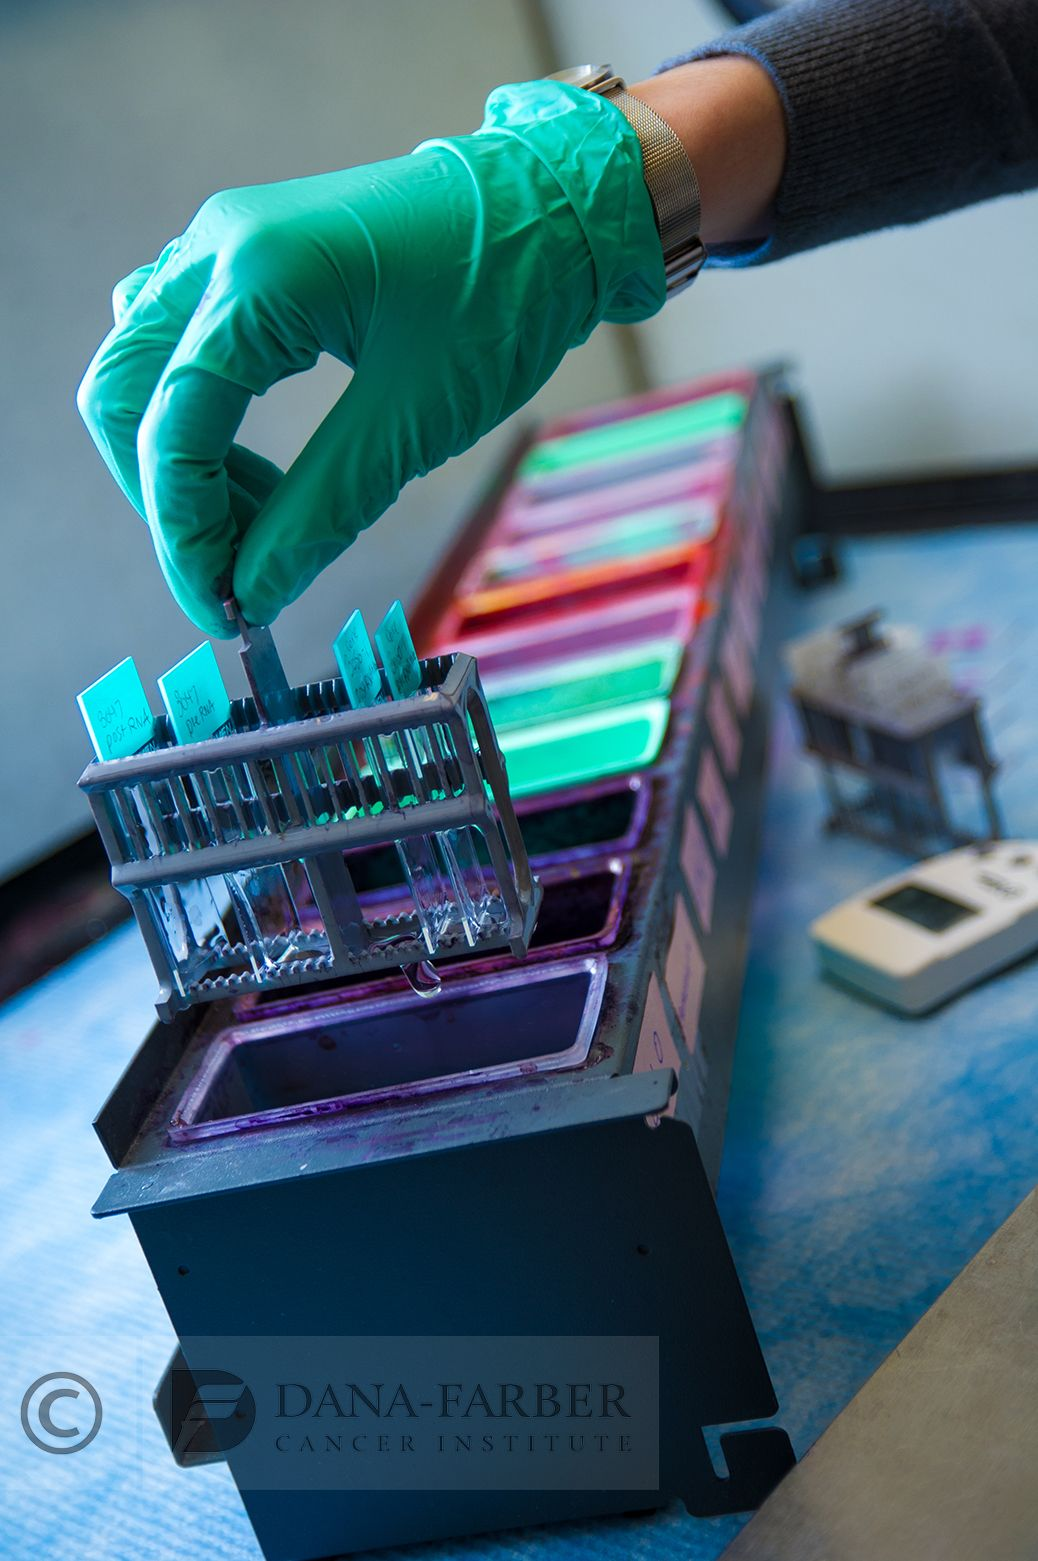 A technician staining slides at the histology staining